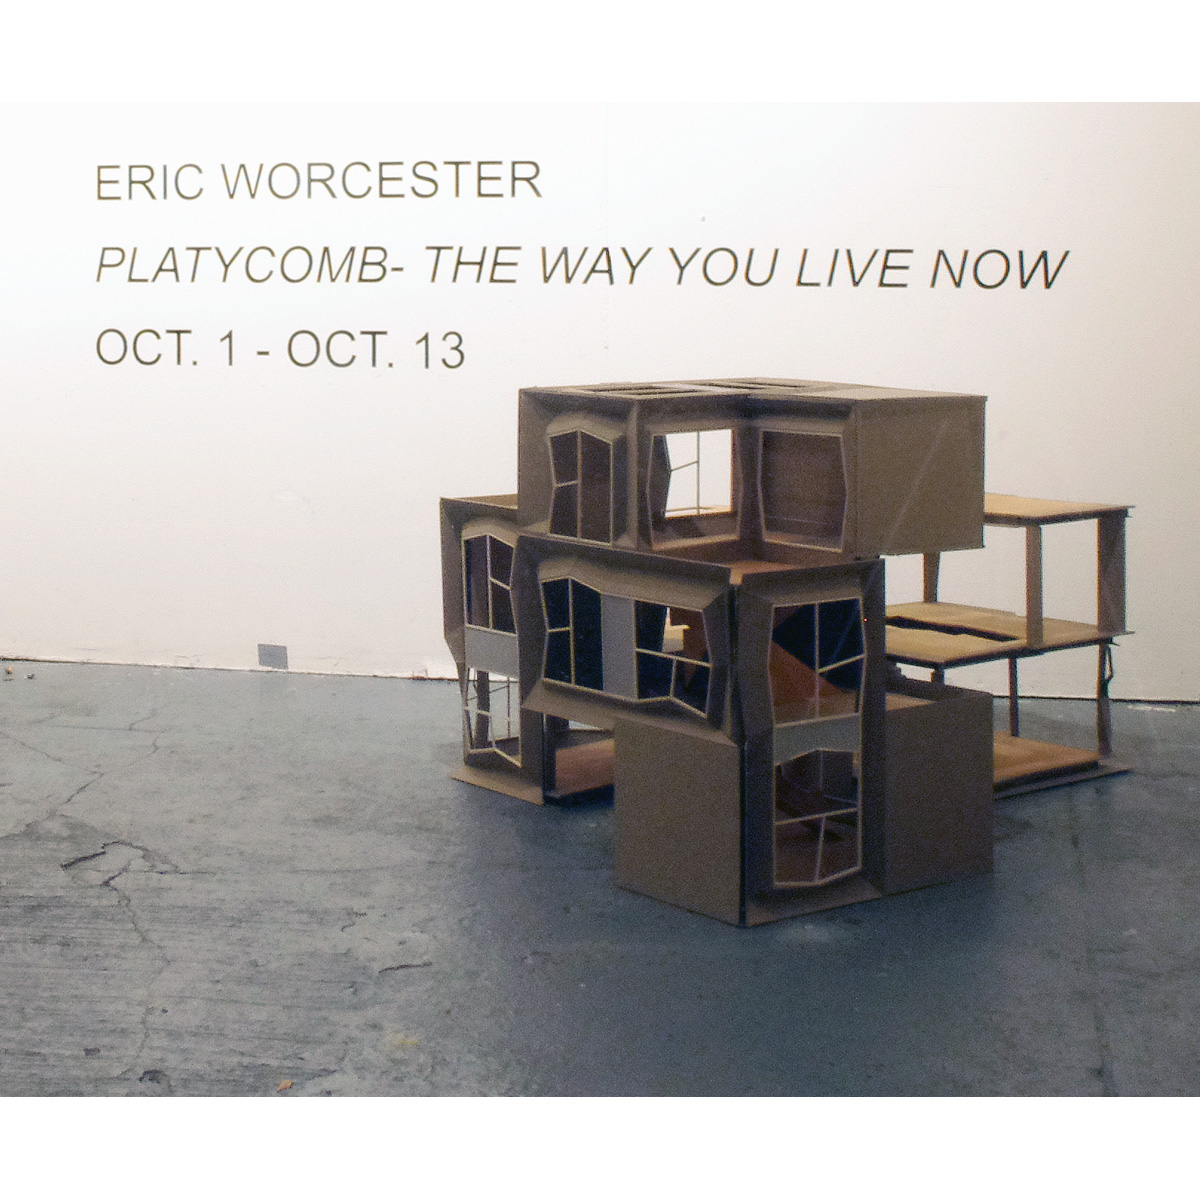 The Way You Live Now